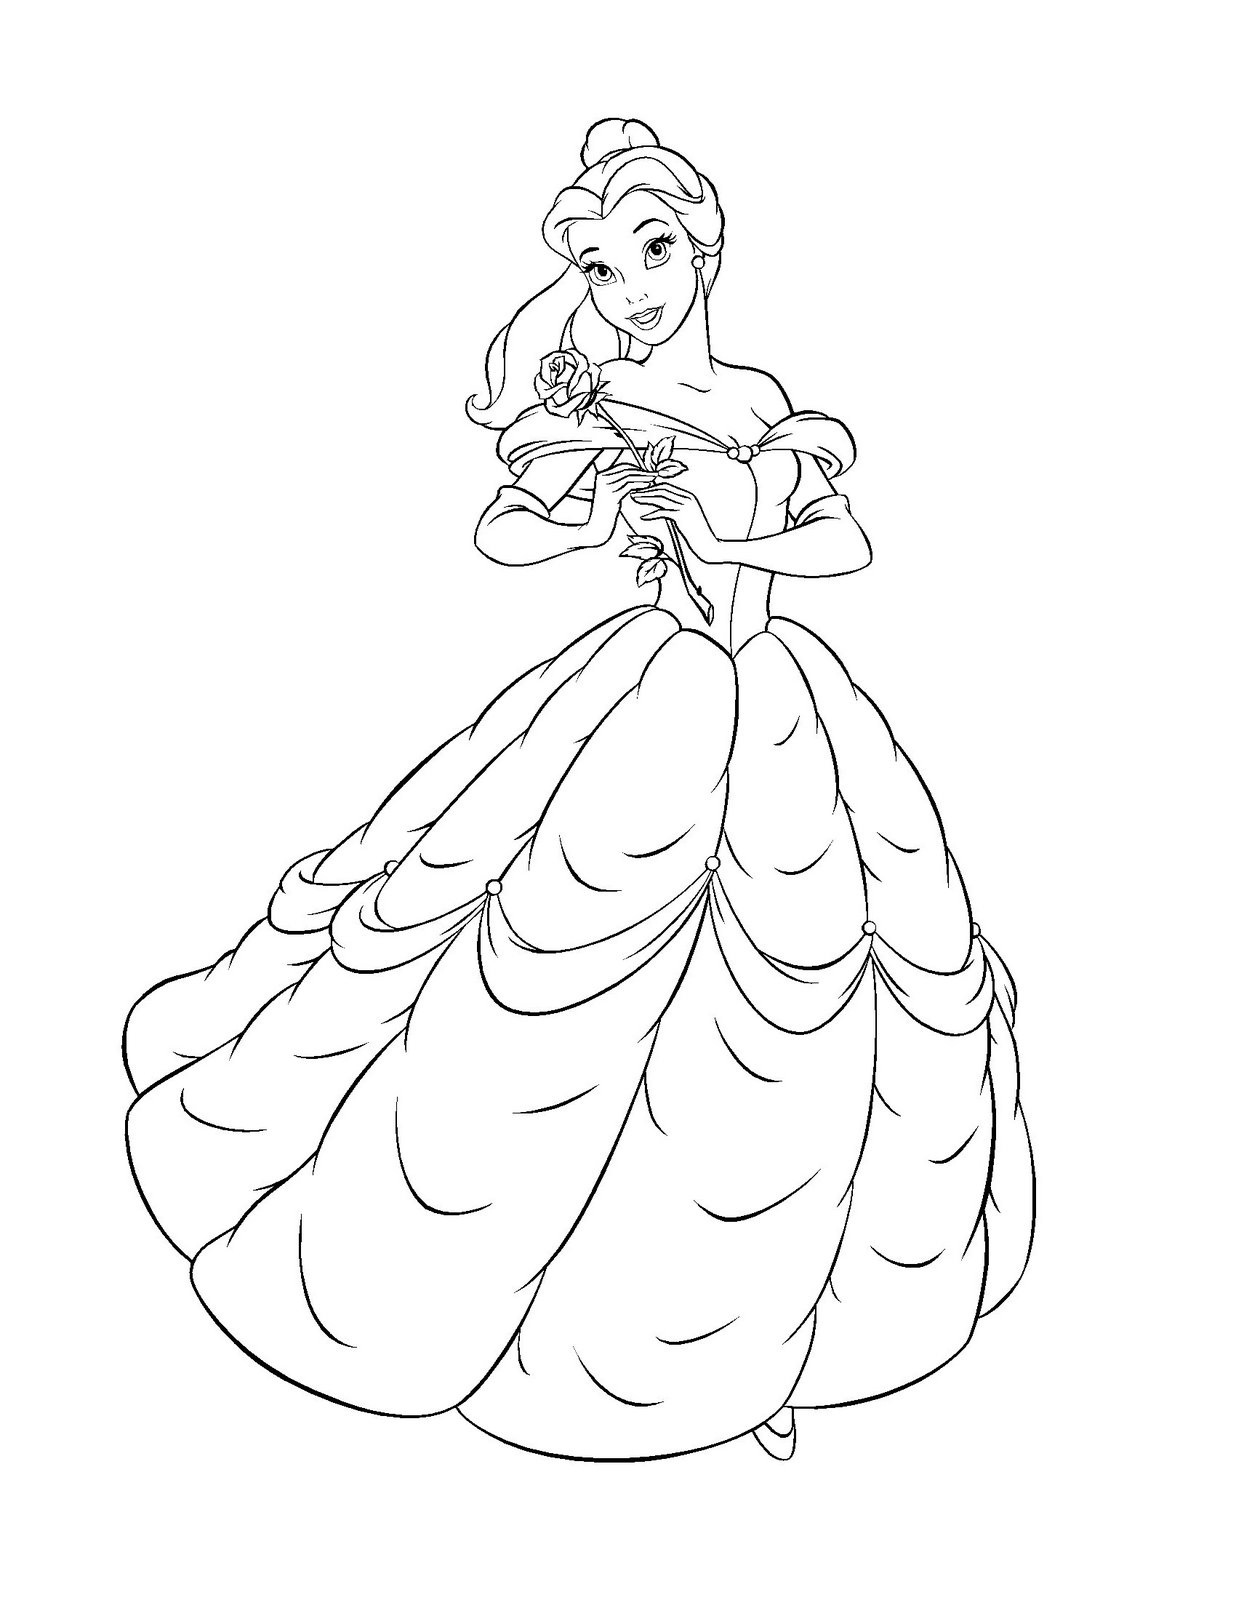 belle coloring sheets free printable belle coloring pages for kids belle coloring sheets